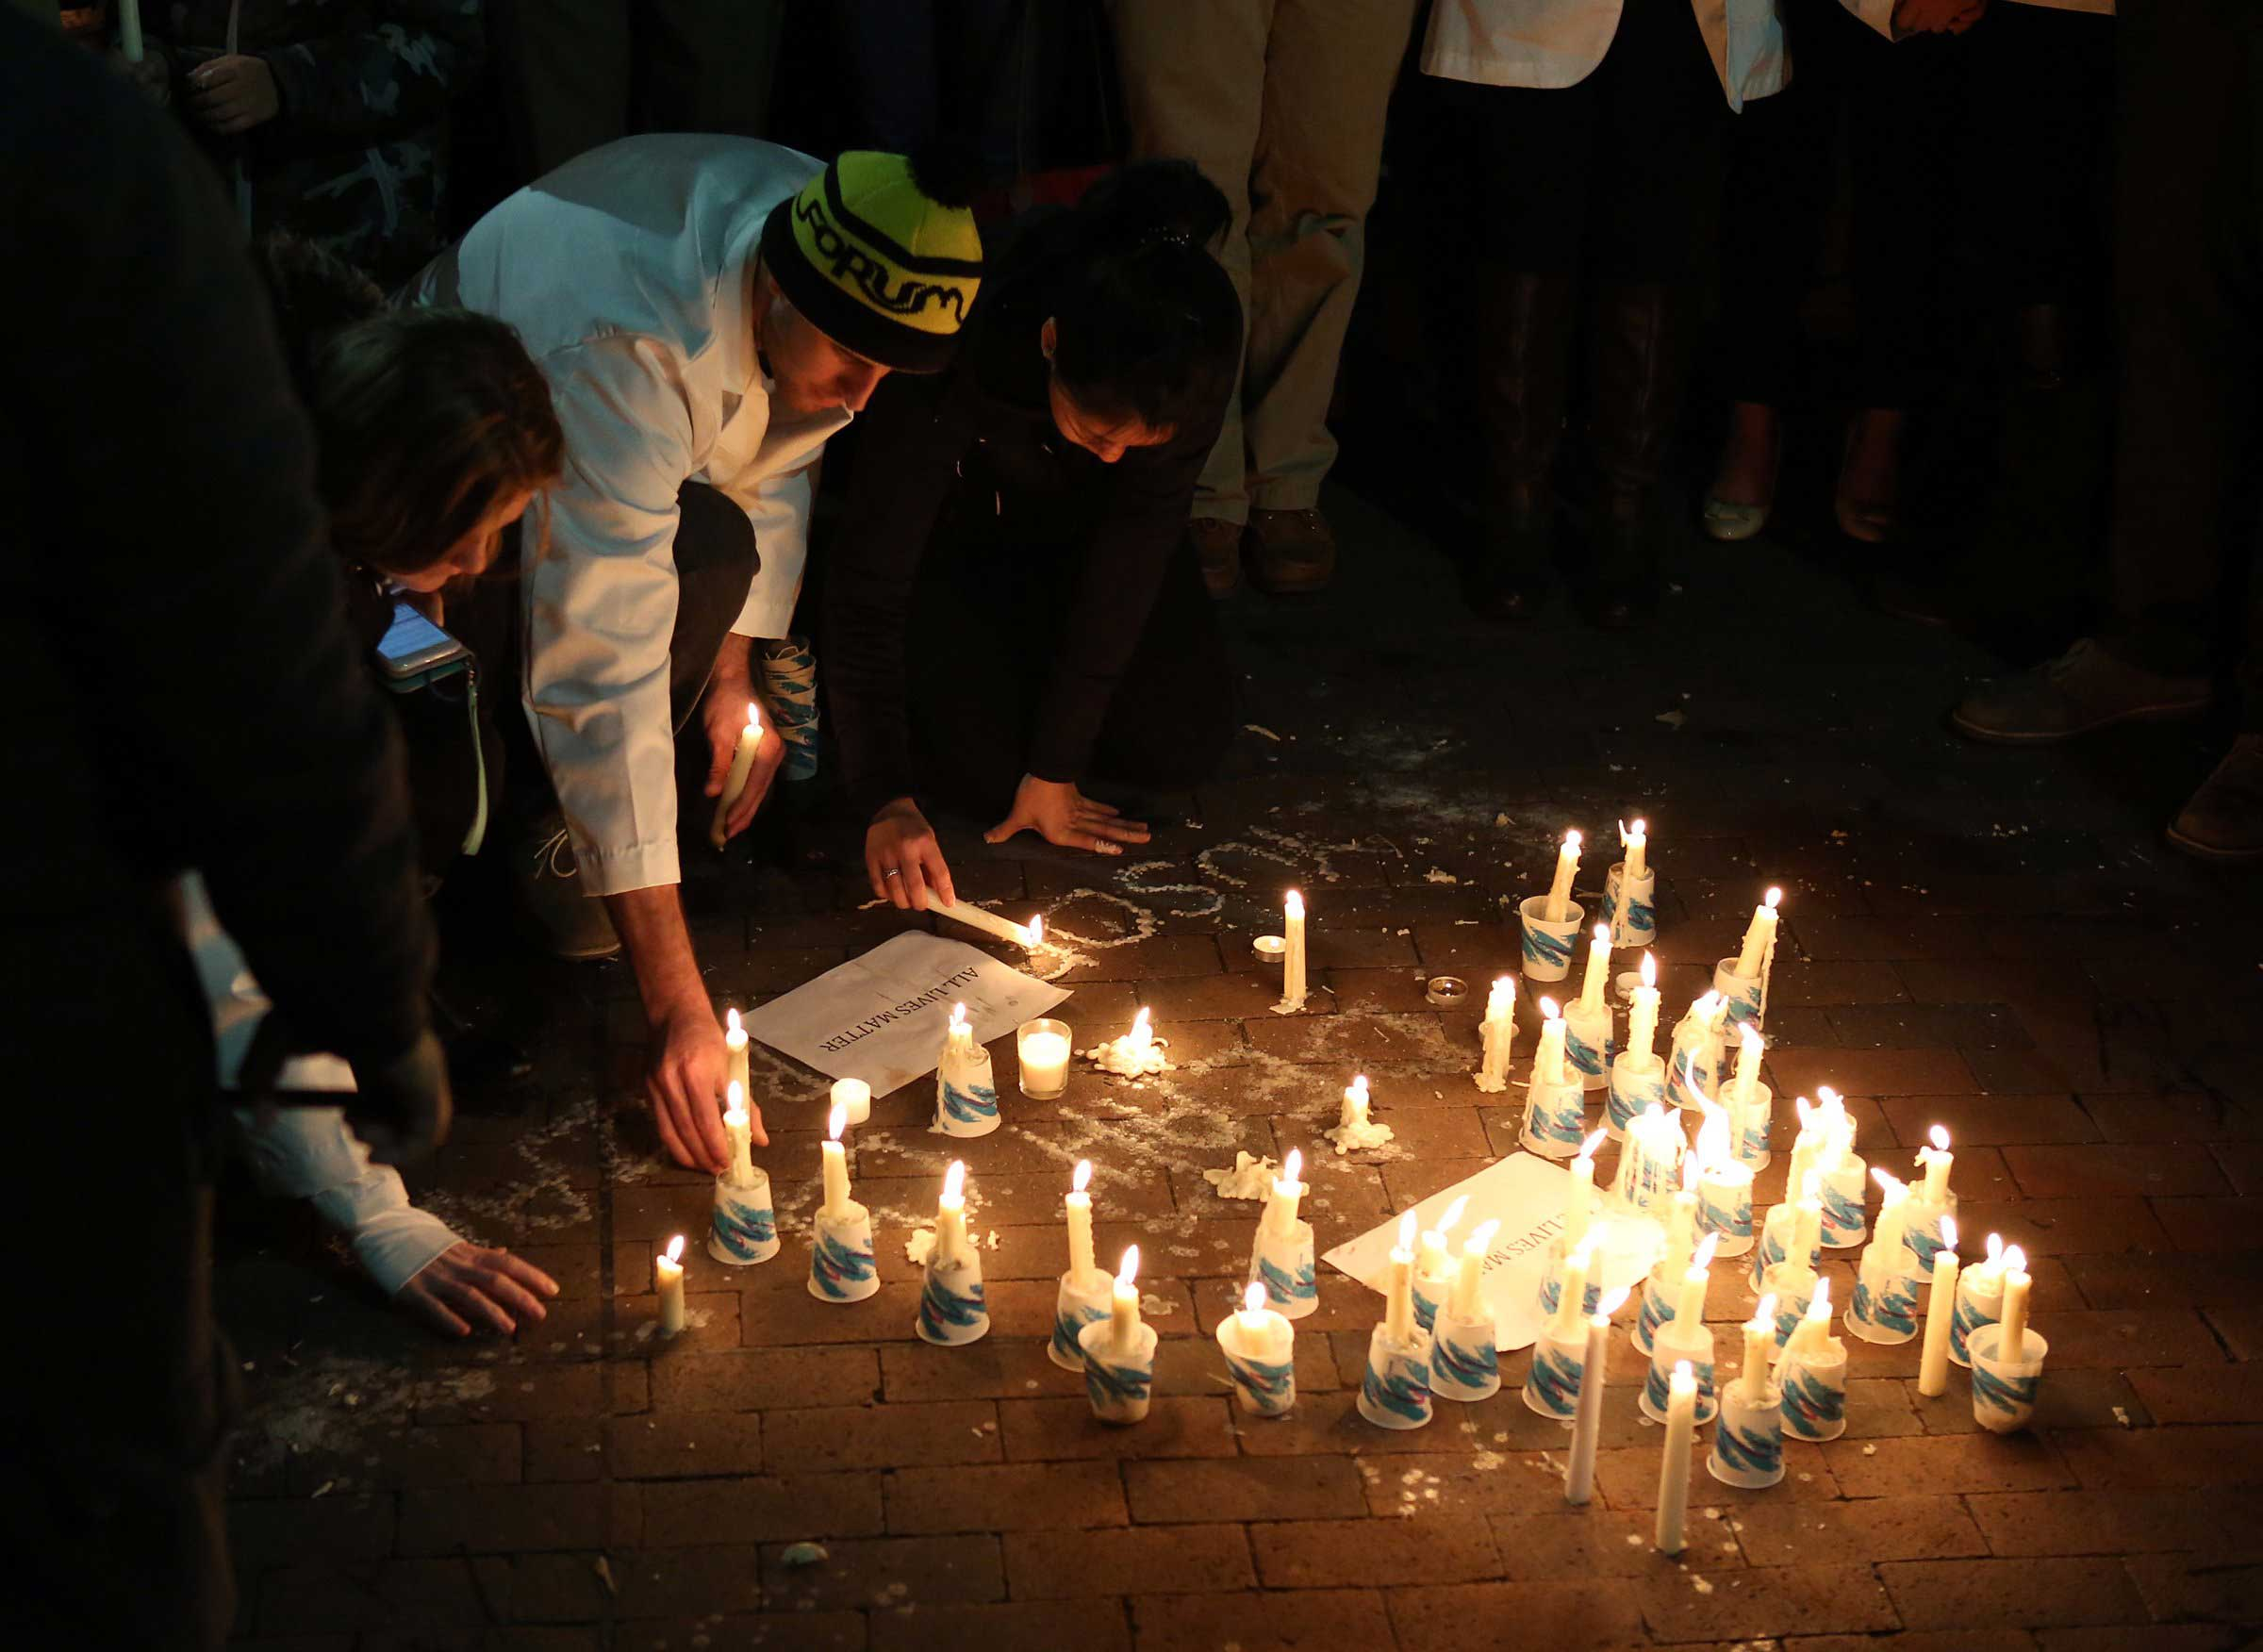 People light candles during a vigil on the campus of the University of North Carolina, for three Muslim students who were murdered, in Chapel Hill, N.C. on Feb. 11, 2015.